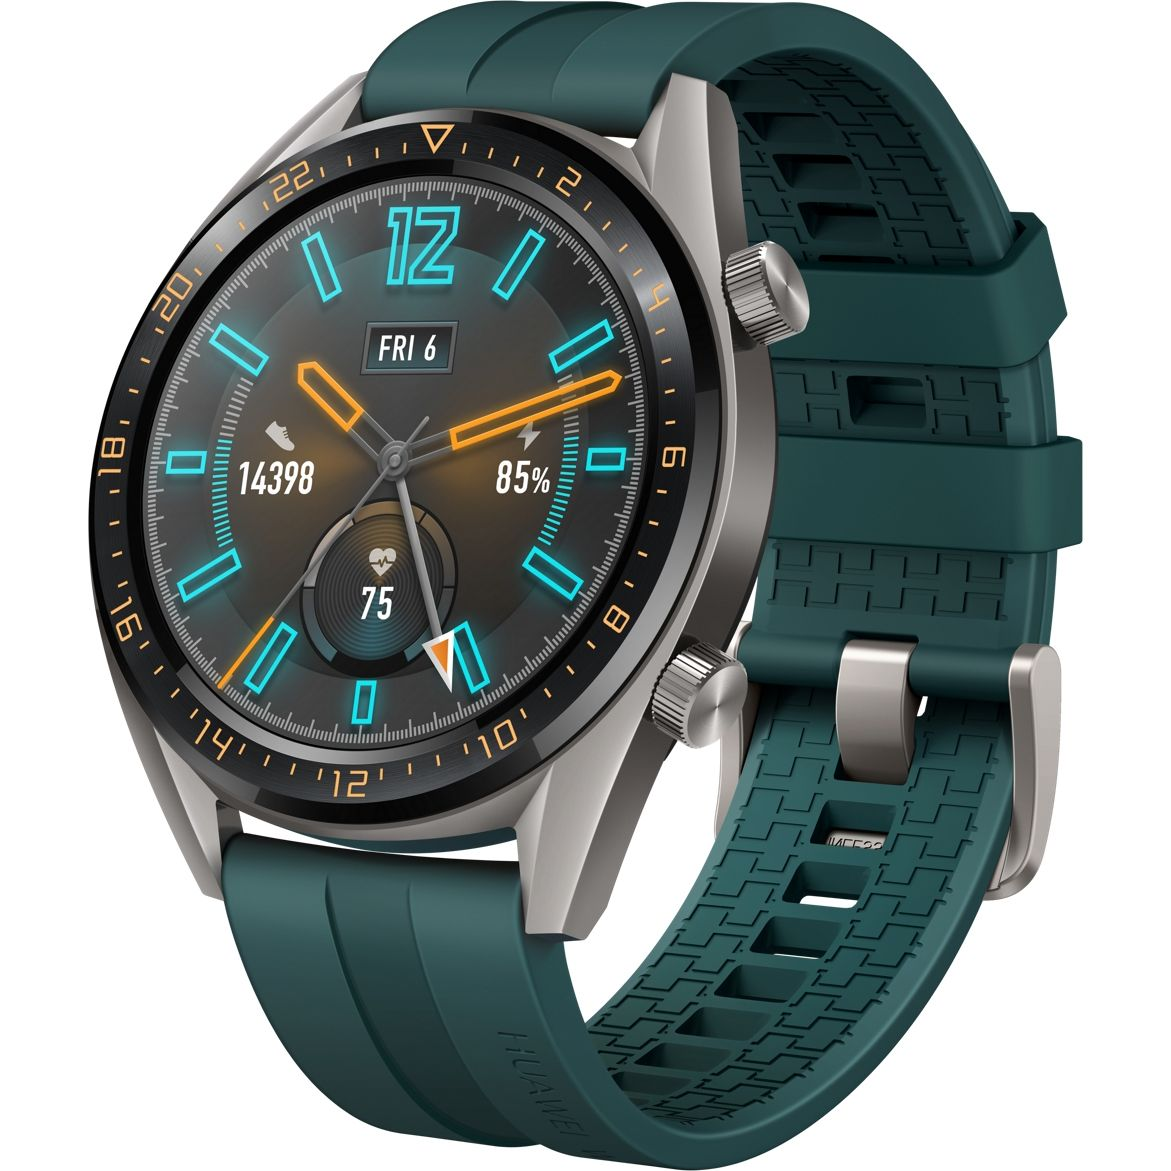 Ceas Smartwatch Huawei Watch GT, GPS, HR, 46mm, Titanium Grey Stainless Steel, Curea Dark Green